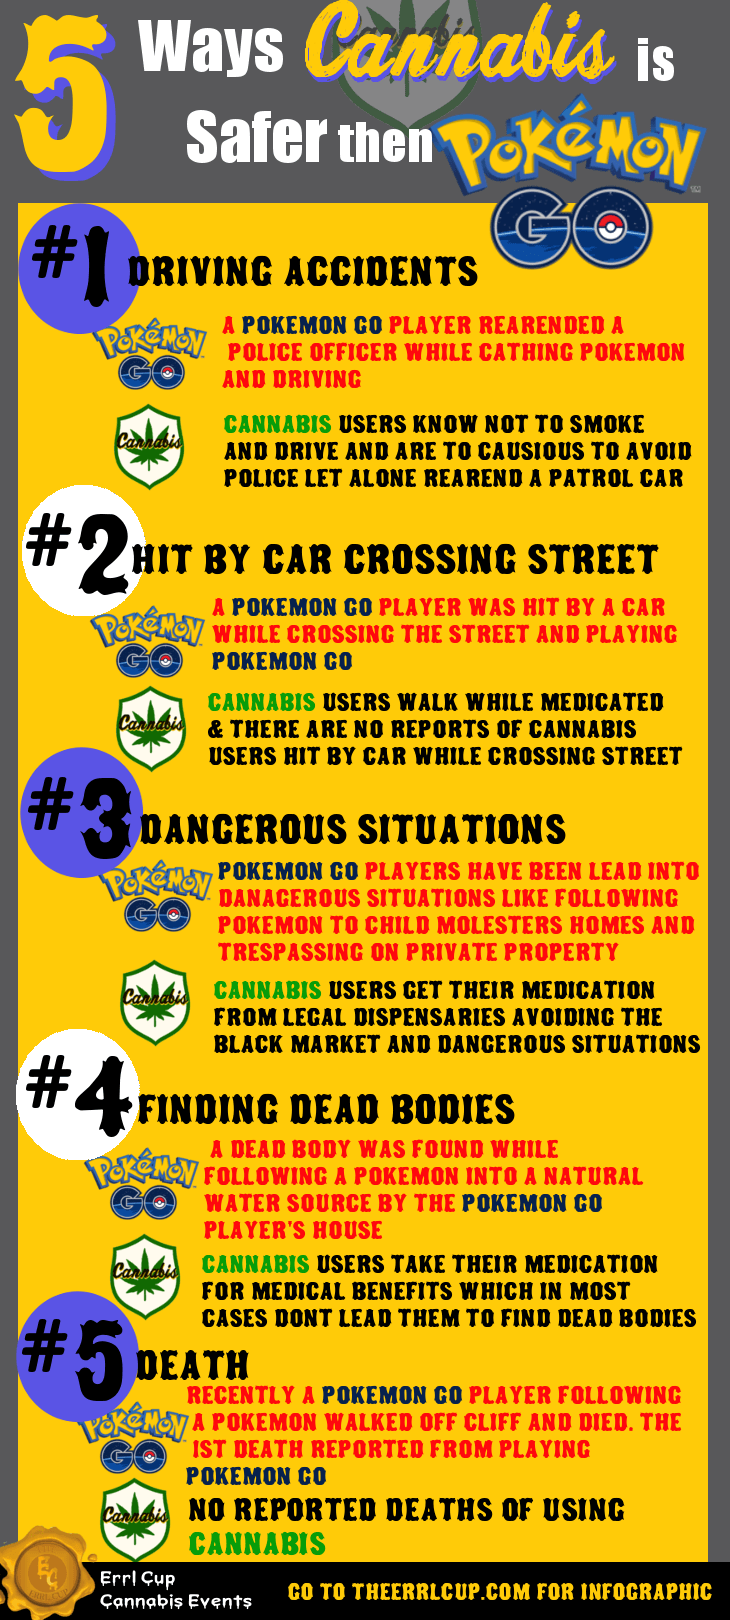 5-ways-cannabis-safer-than-pokemon-go-infographic-plaza